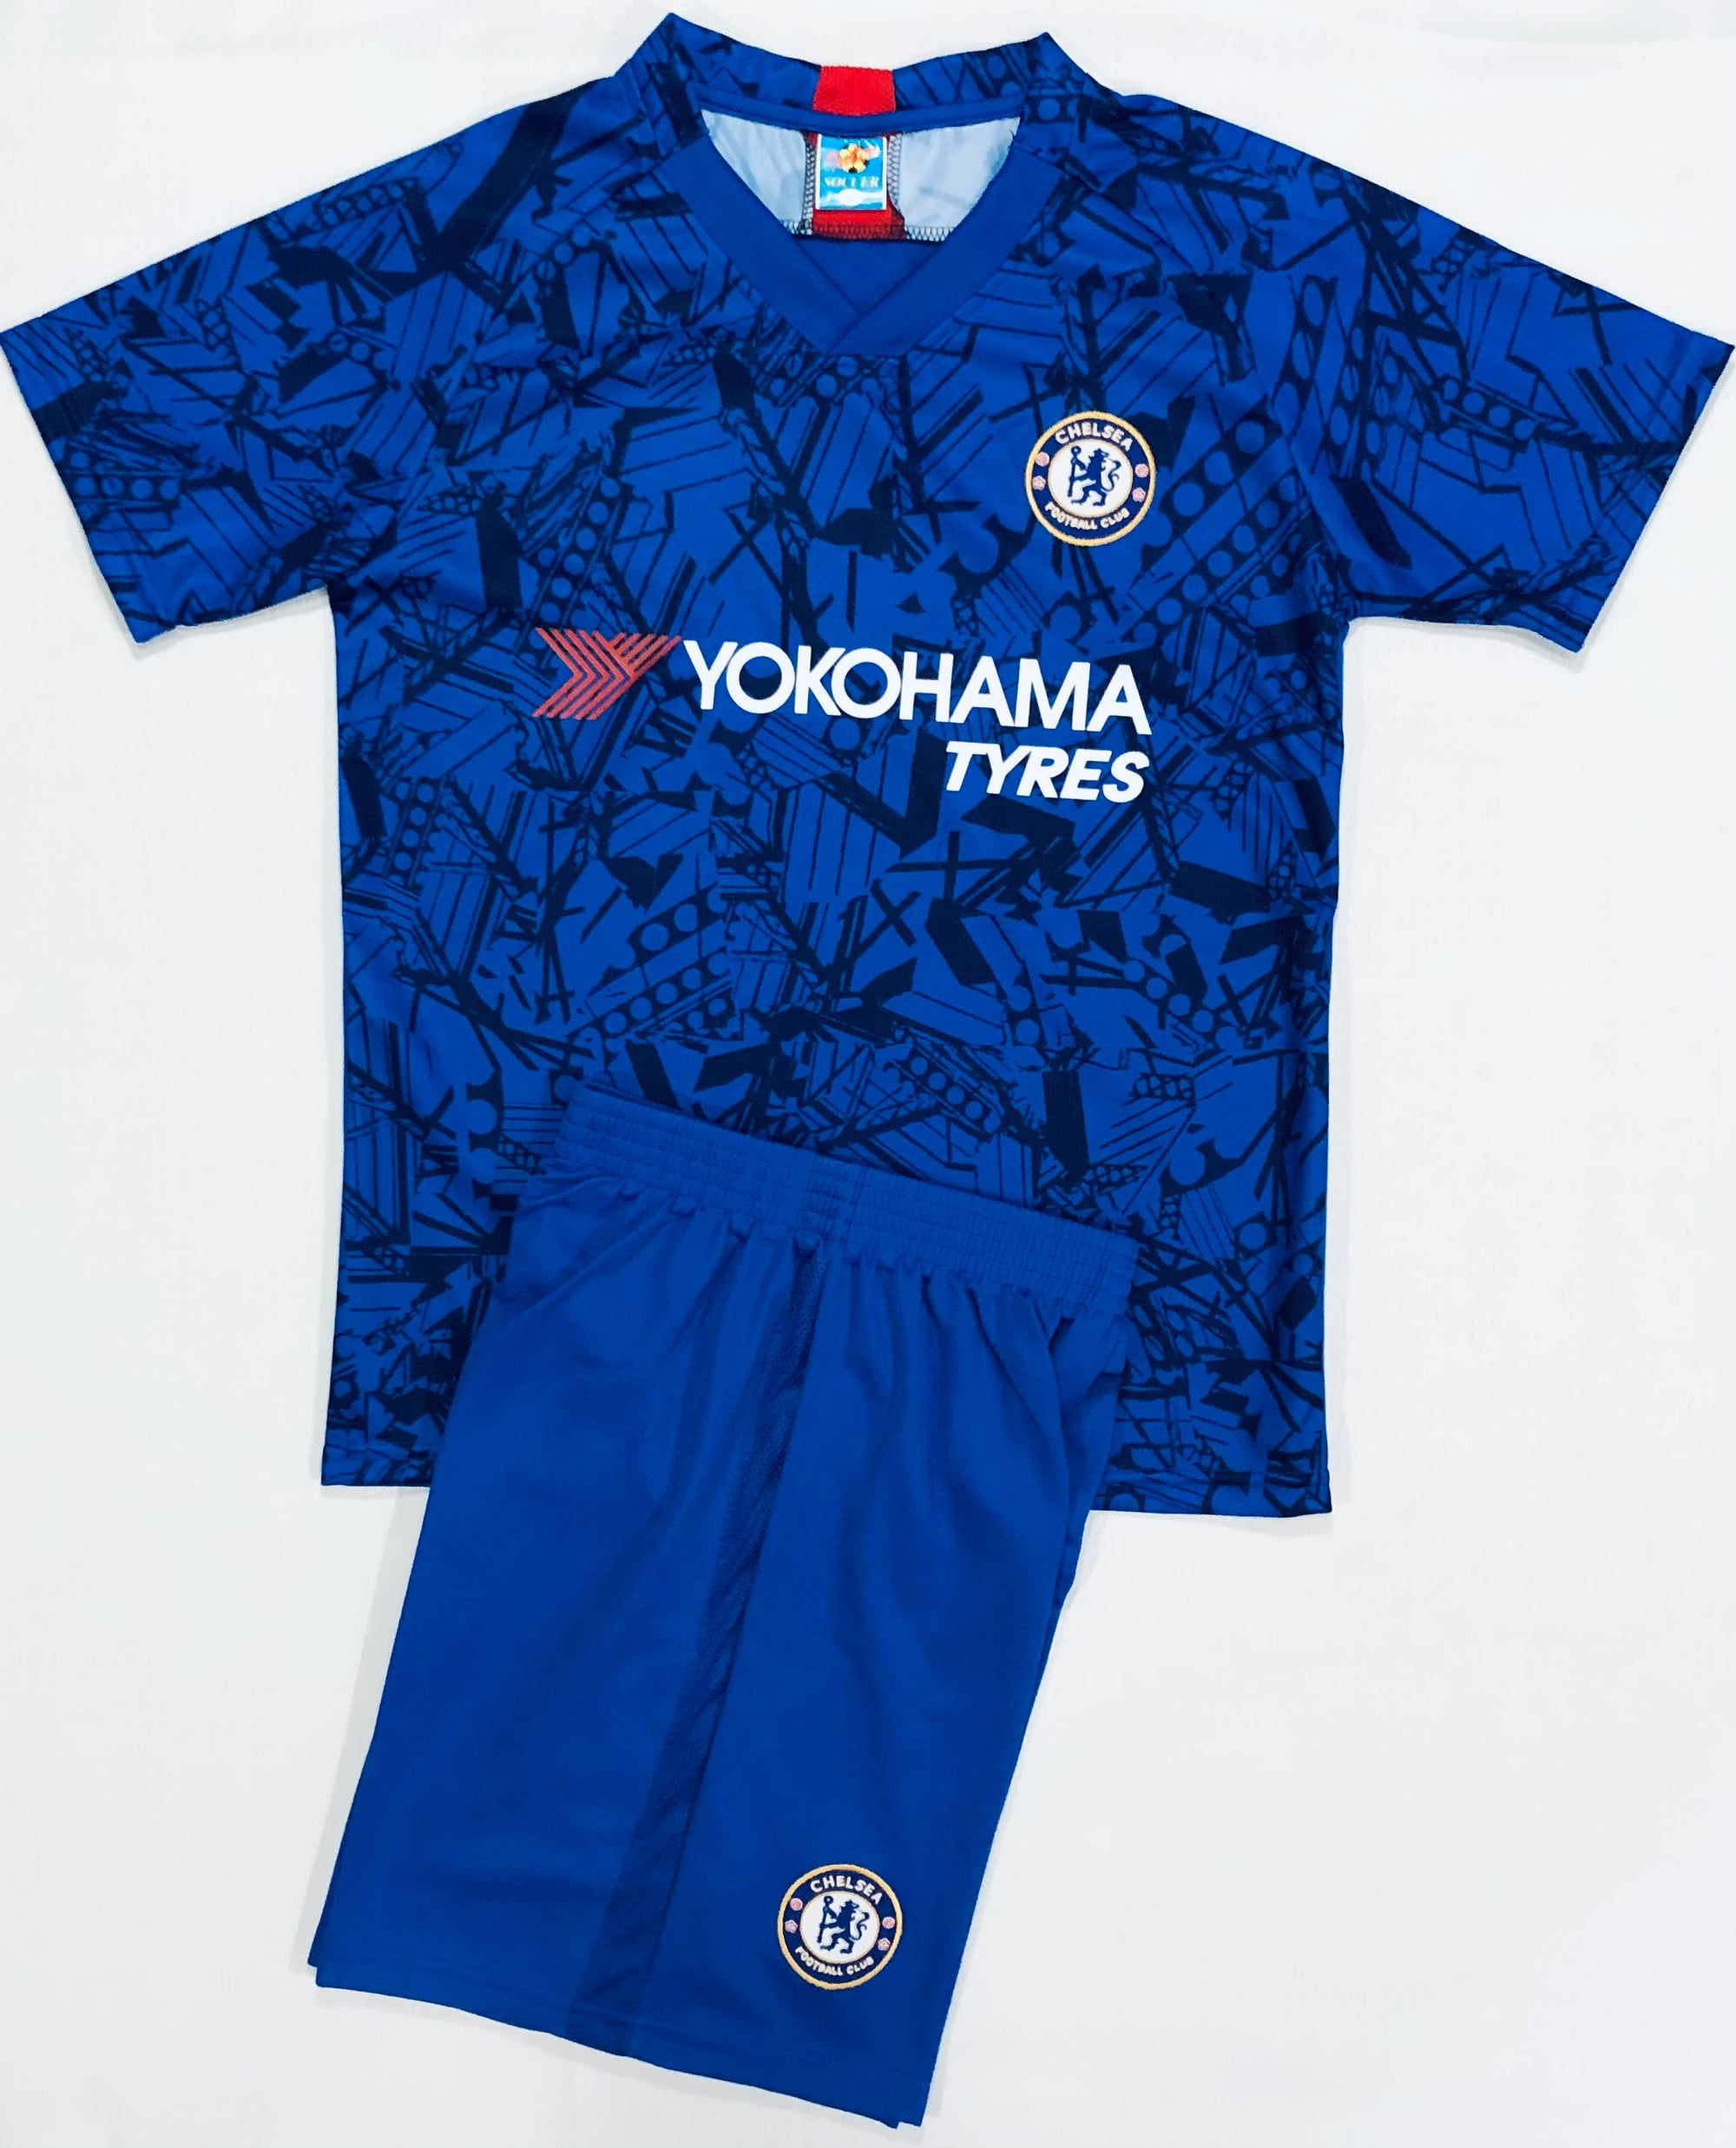 CHELSEA HOME 2019/20 KIDS 2-PIECE SOCCER SET